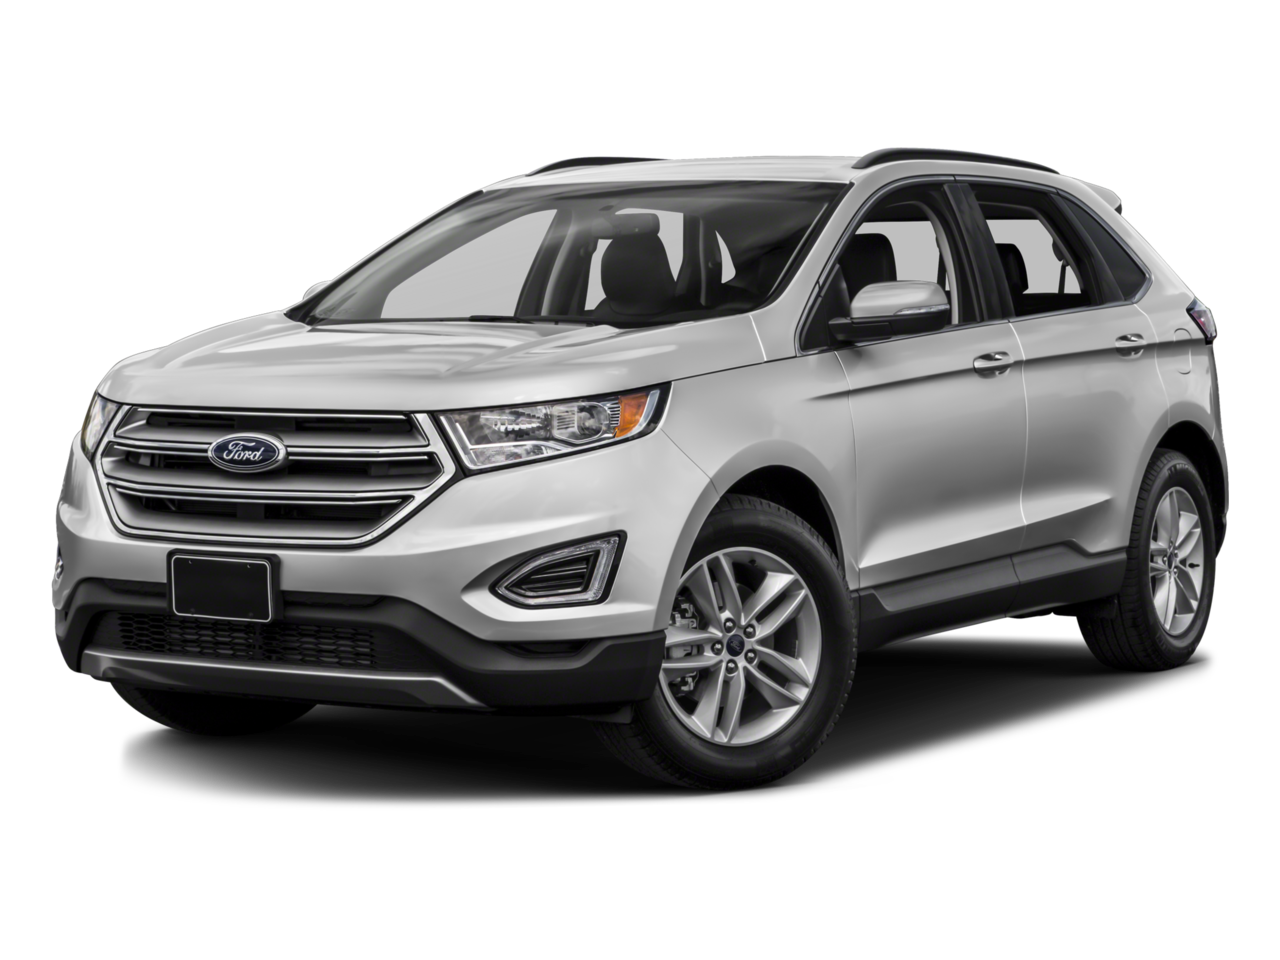 2015_Ford_Edge_Chrome.png